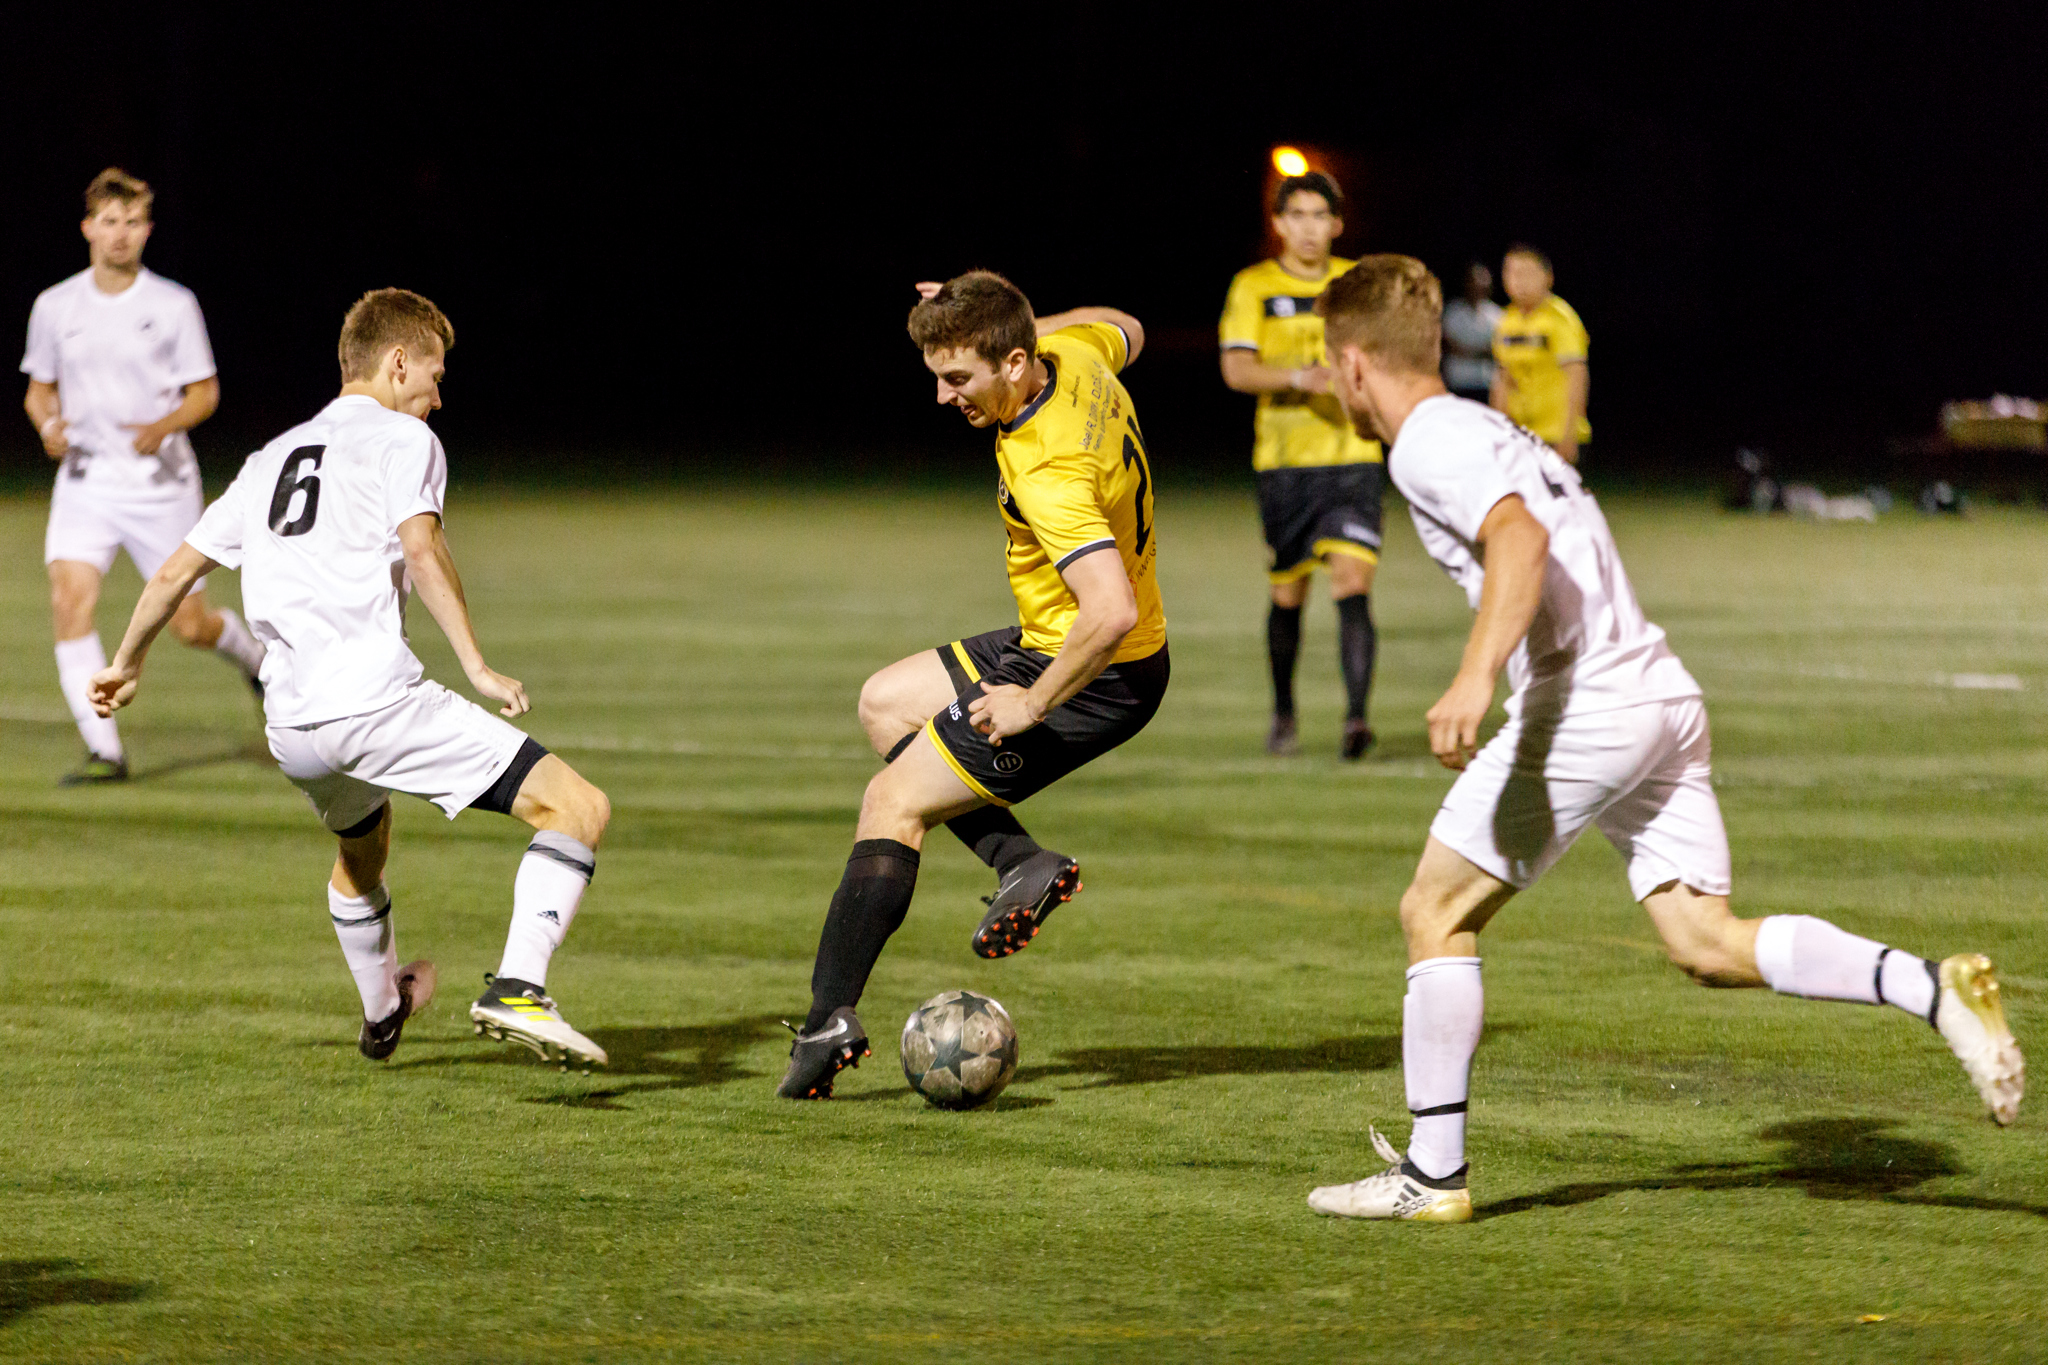 May 22, 2018 - Saint Paul, Minnesota, United States -  Dynamo FC Saint Cloud defeated River City FC 1-0 in a match played at McMurray Fields.   (Photo by Seth Steffenhagen/Steffenhagen Photography)